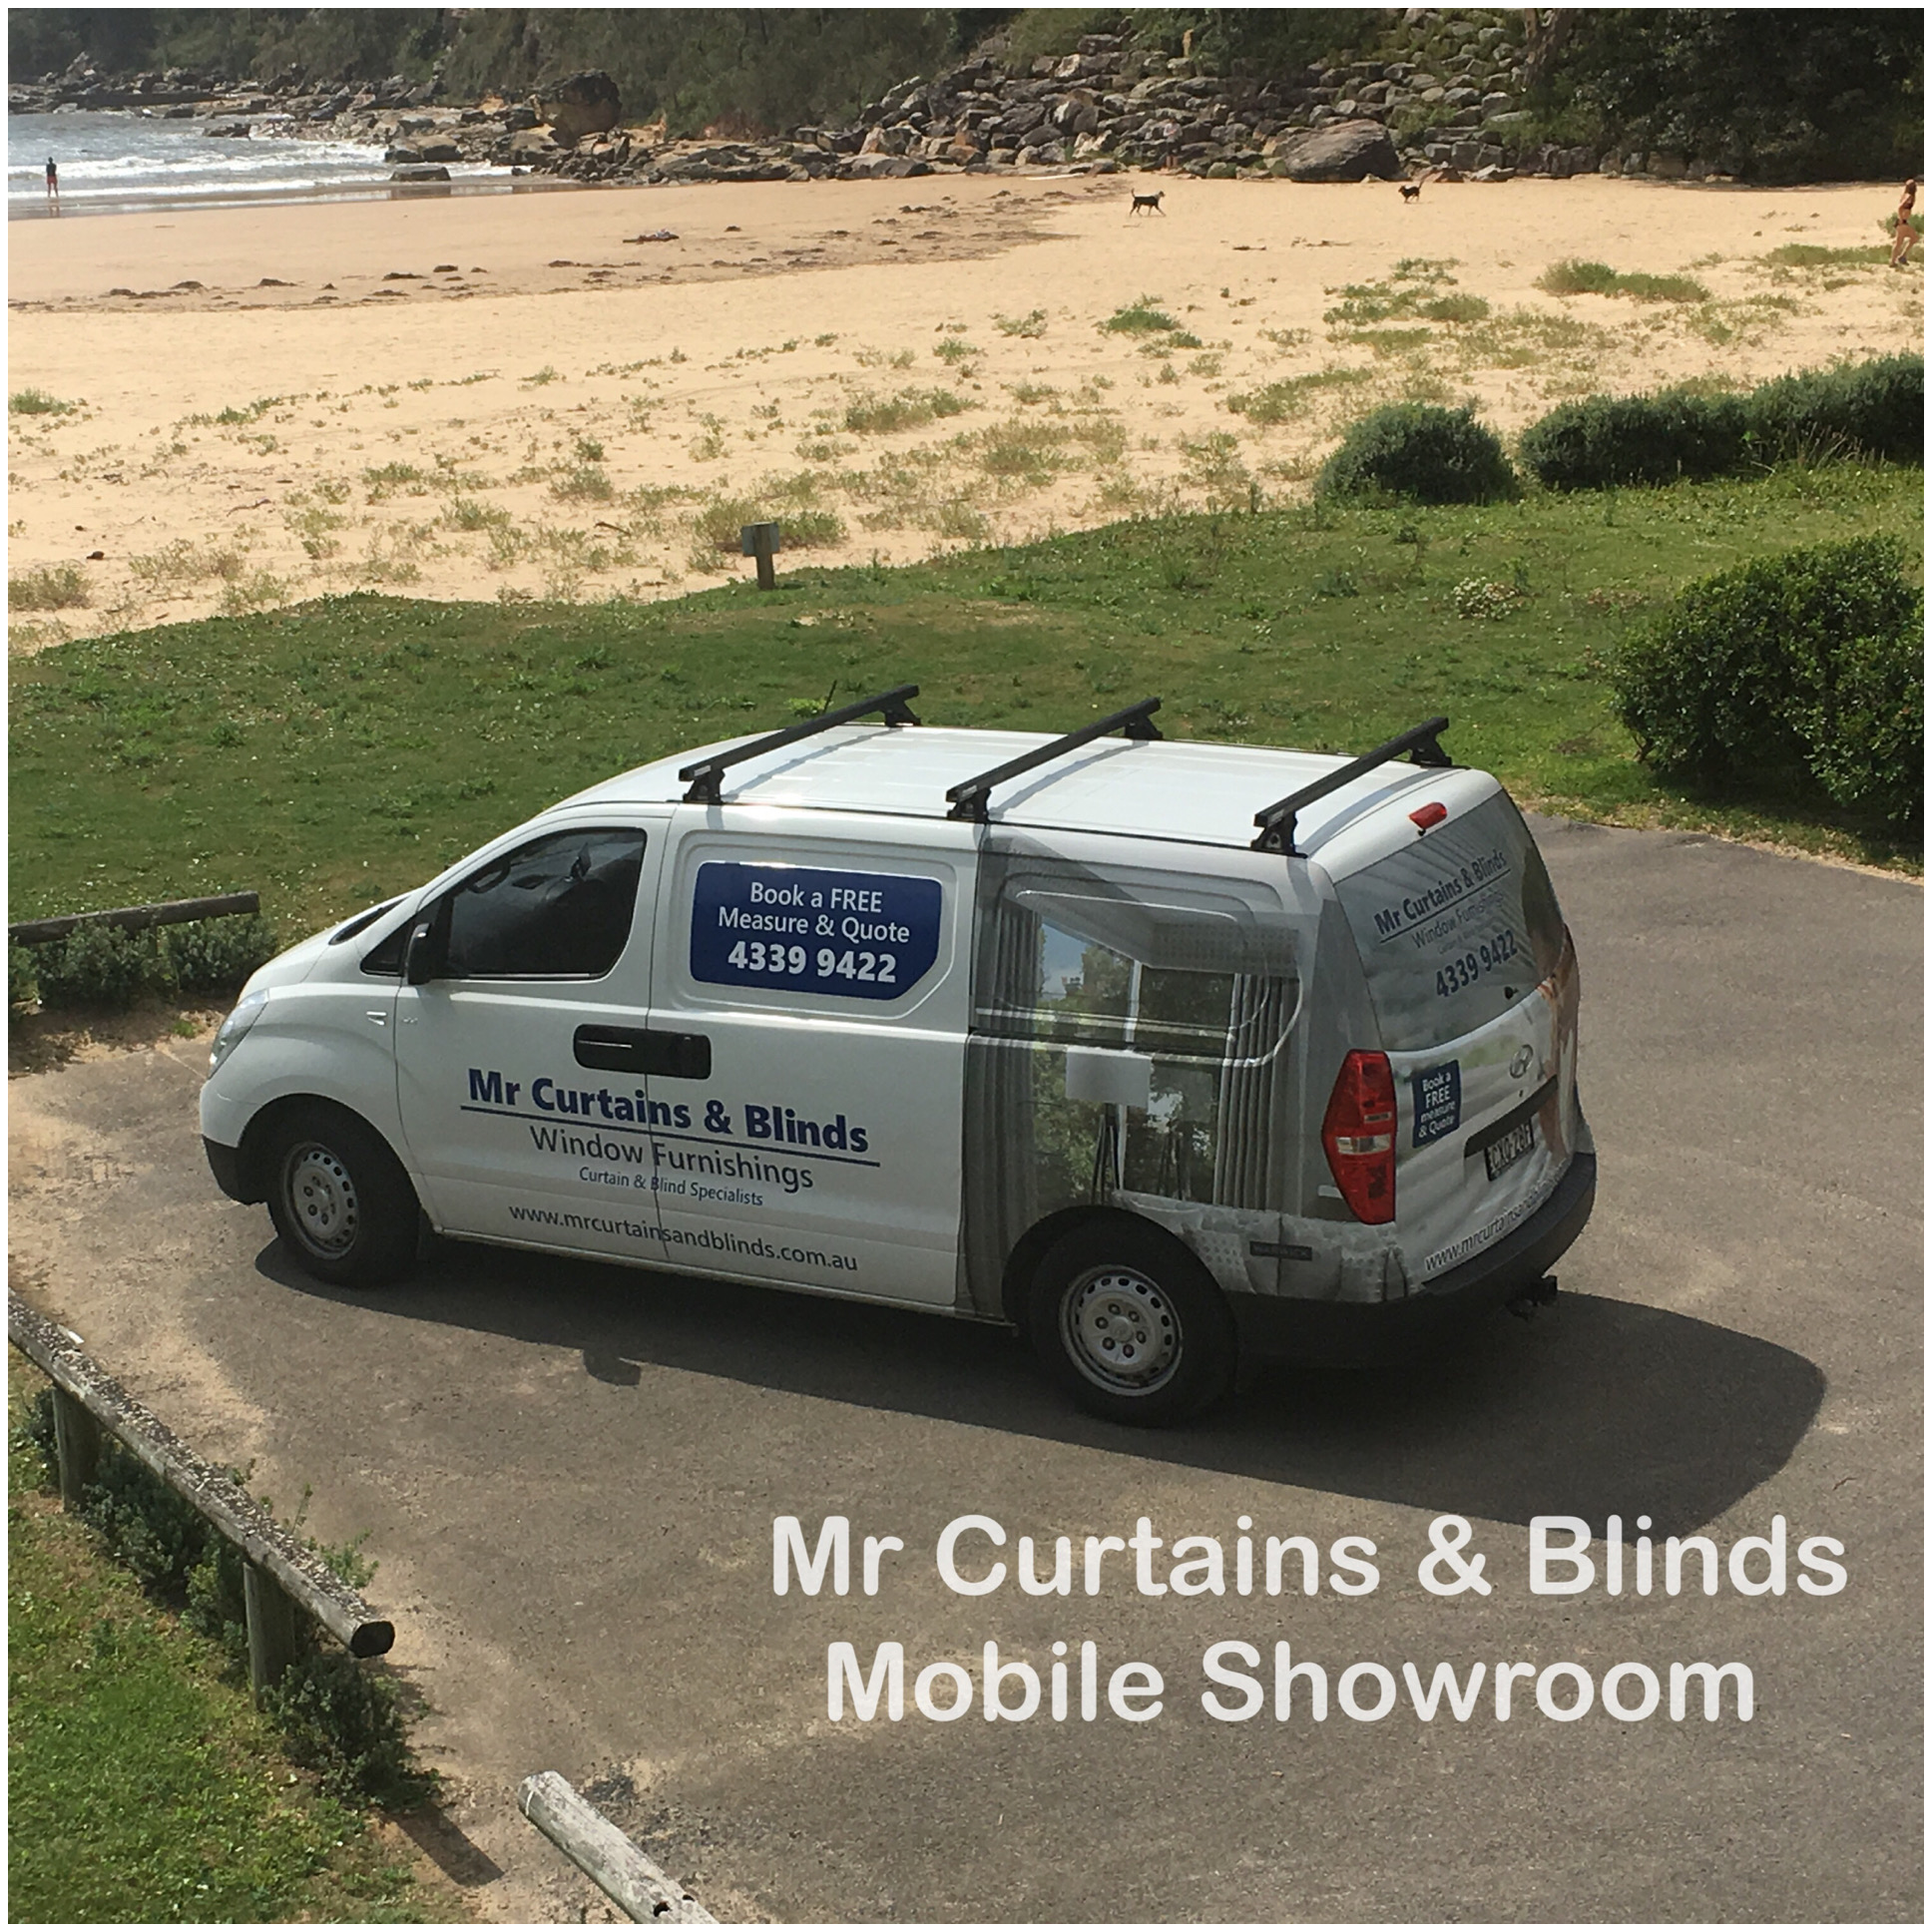 Mr Curtains and Blinds Central Coast Mobile Showroom